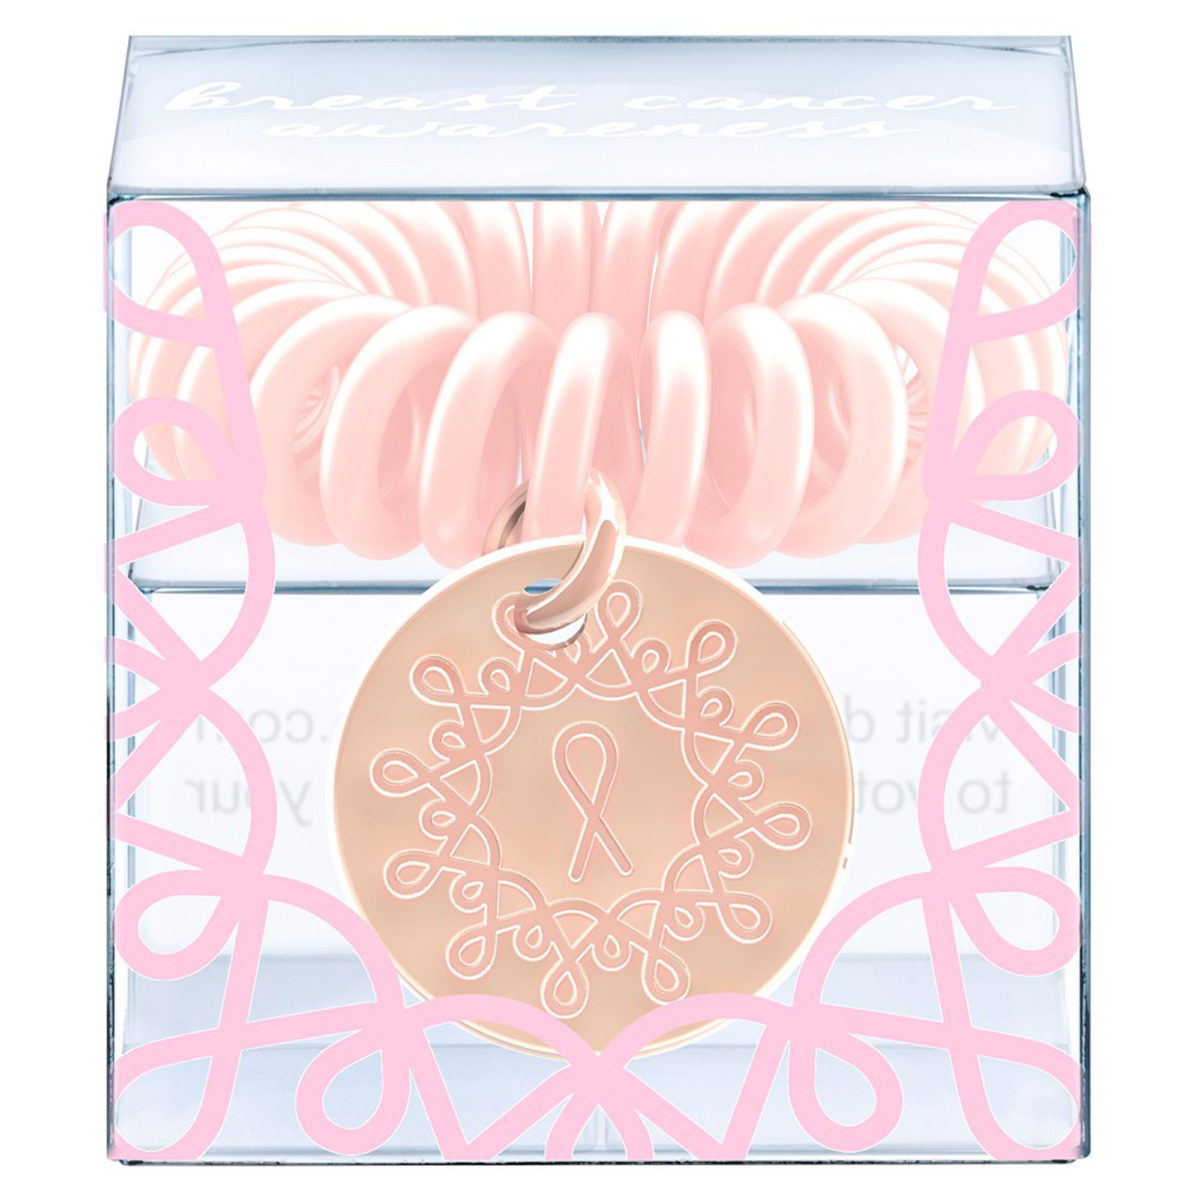 Editors Pick: Invisibobble Pink Heroes!